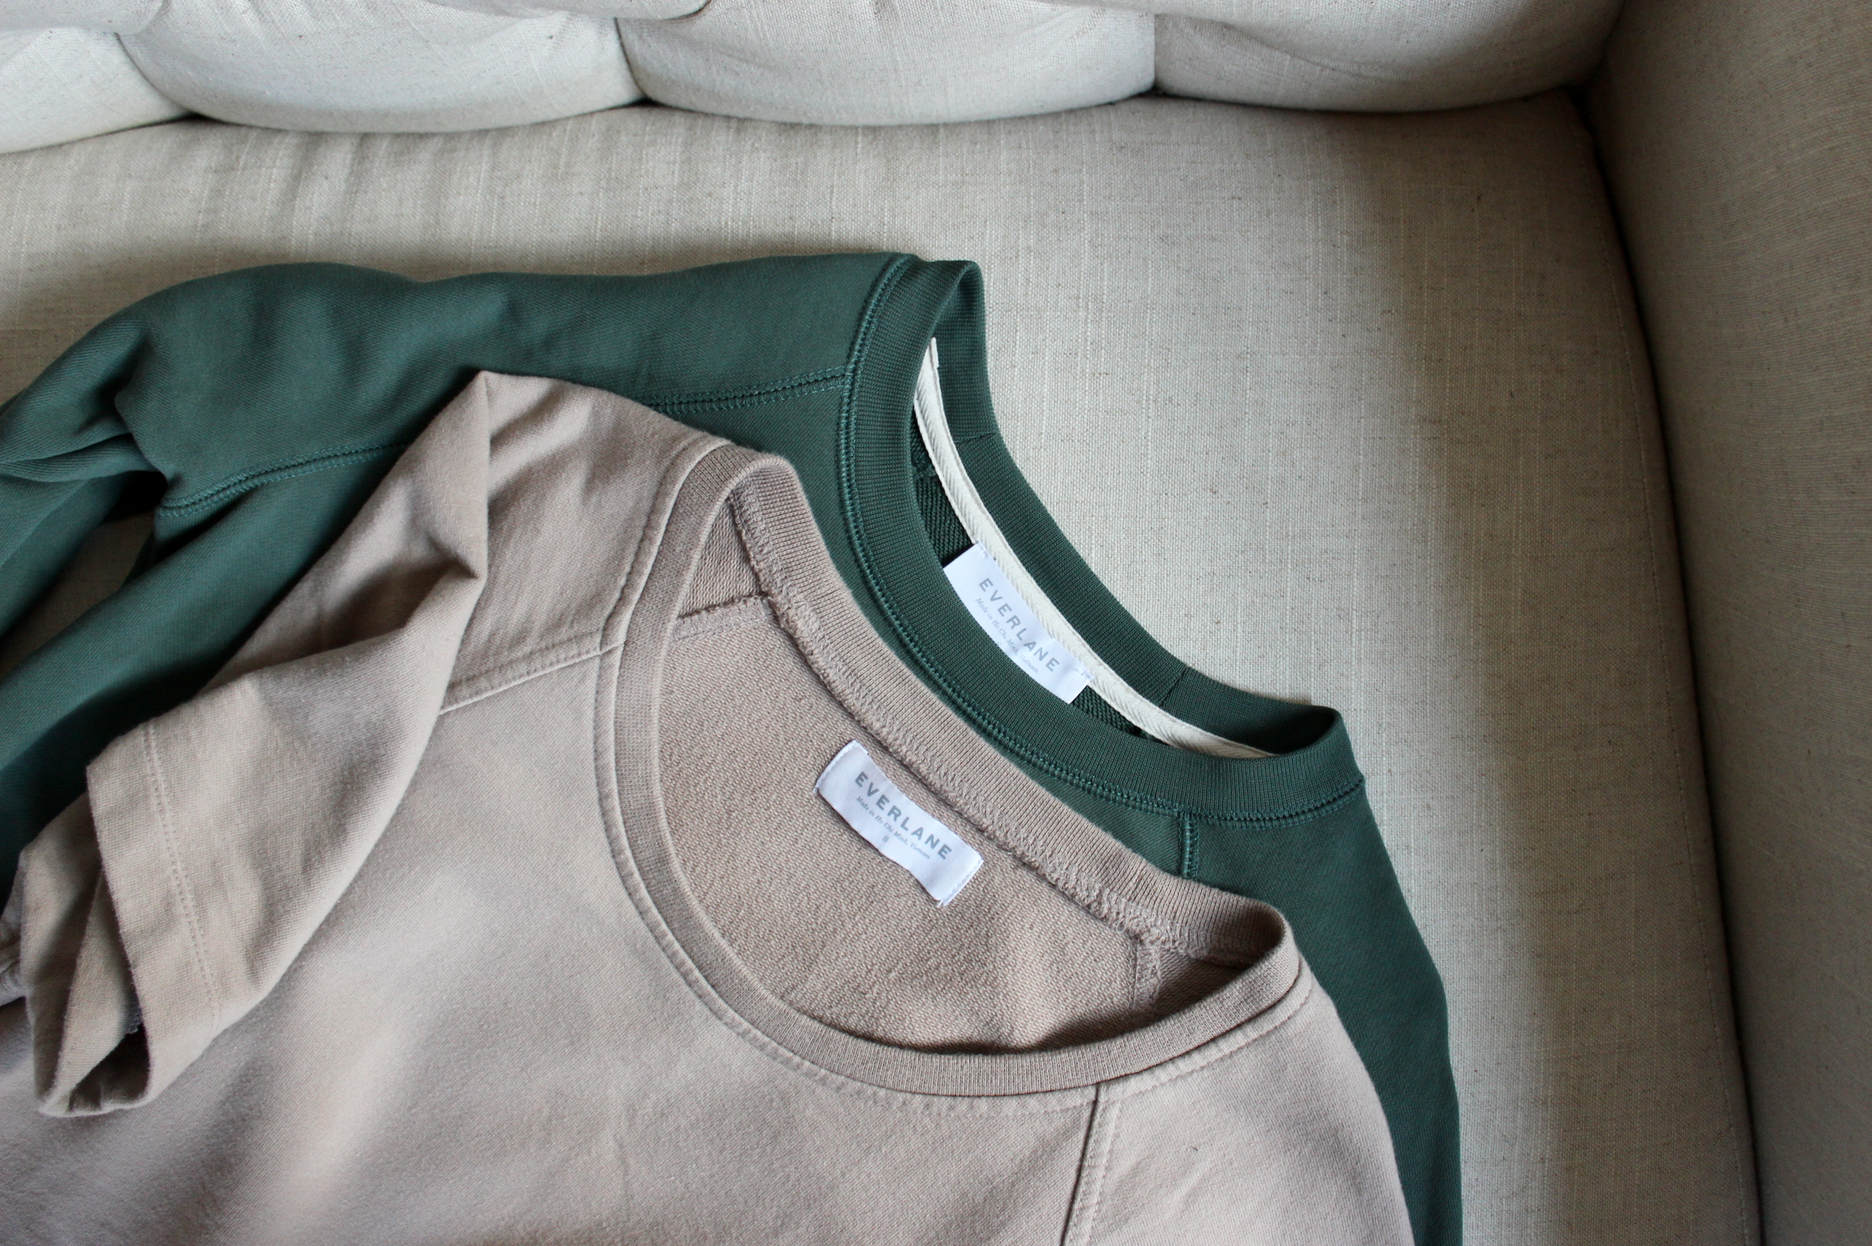 Ethical, sustainable sweatshirts | How to find secondhand sweatshirts | Litterless